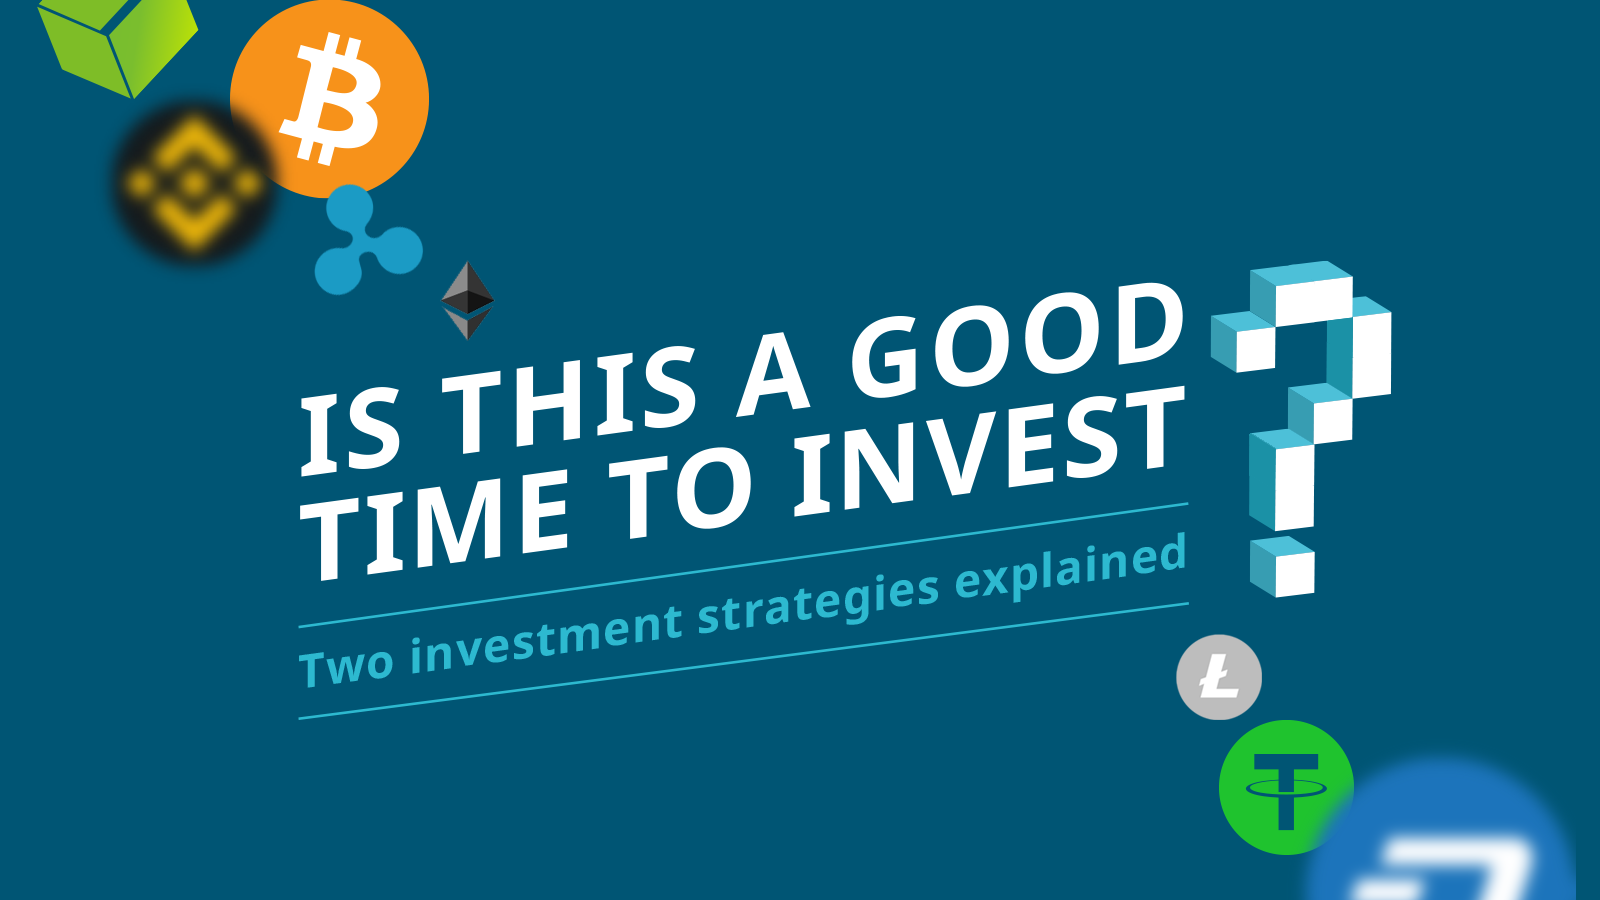 Is this a good time to invest? Two investment strategies explained